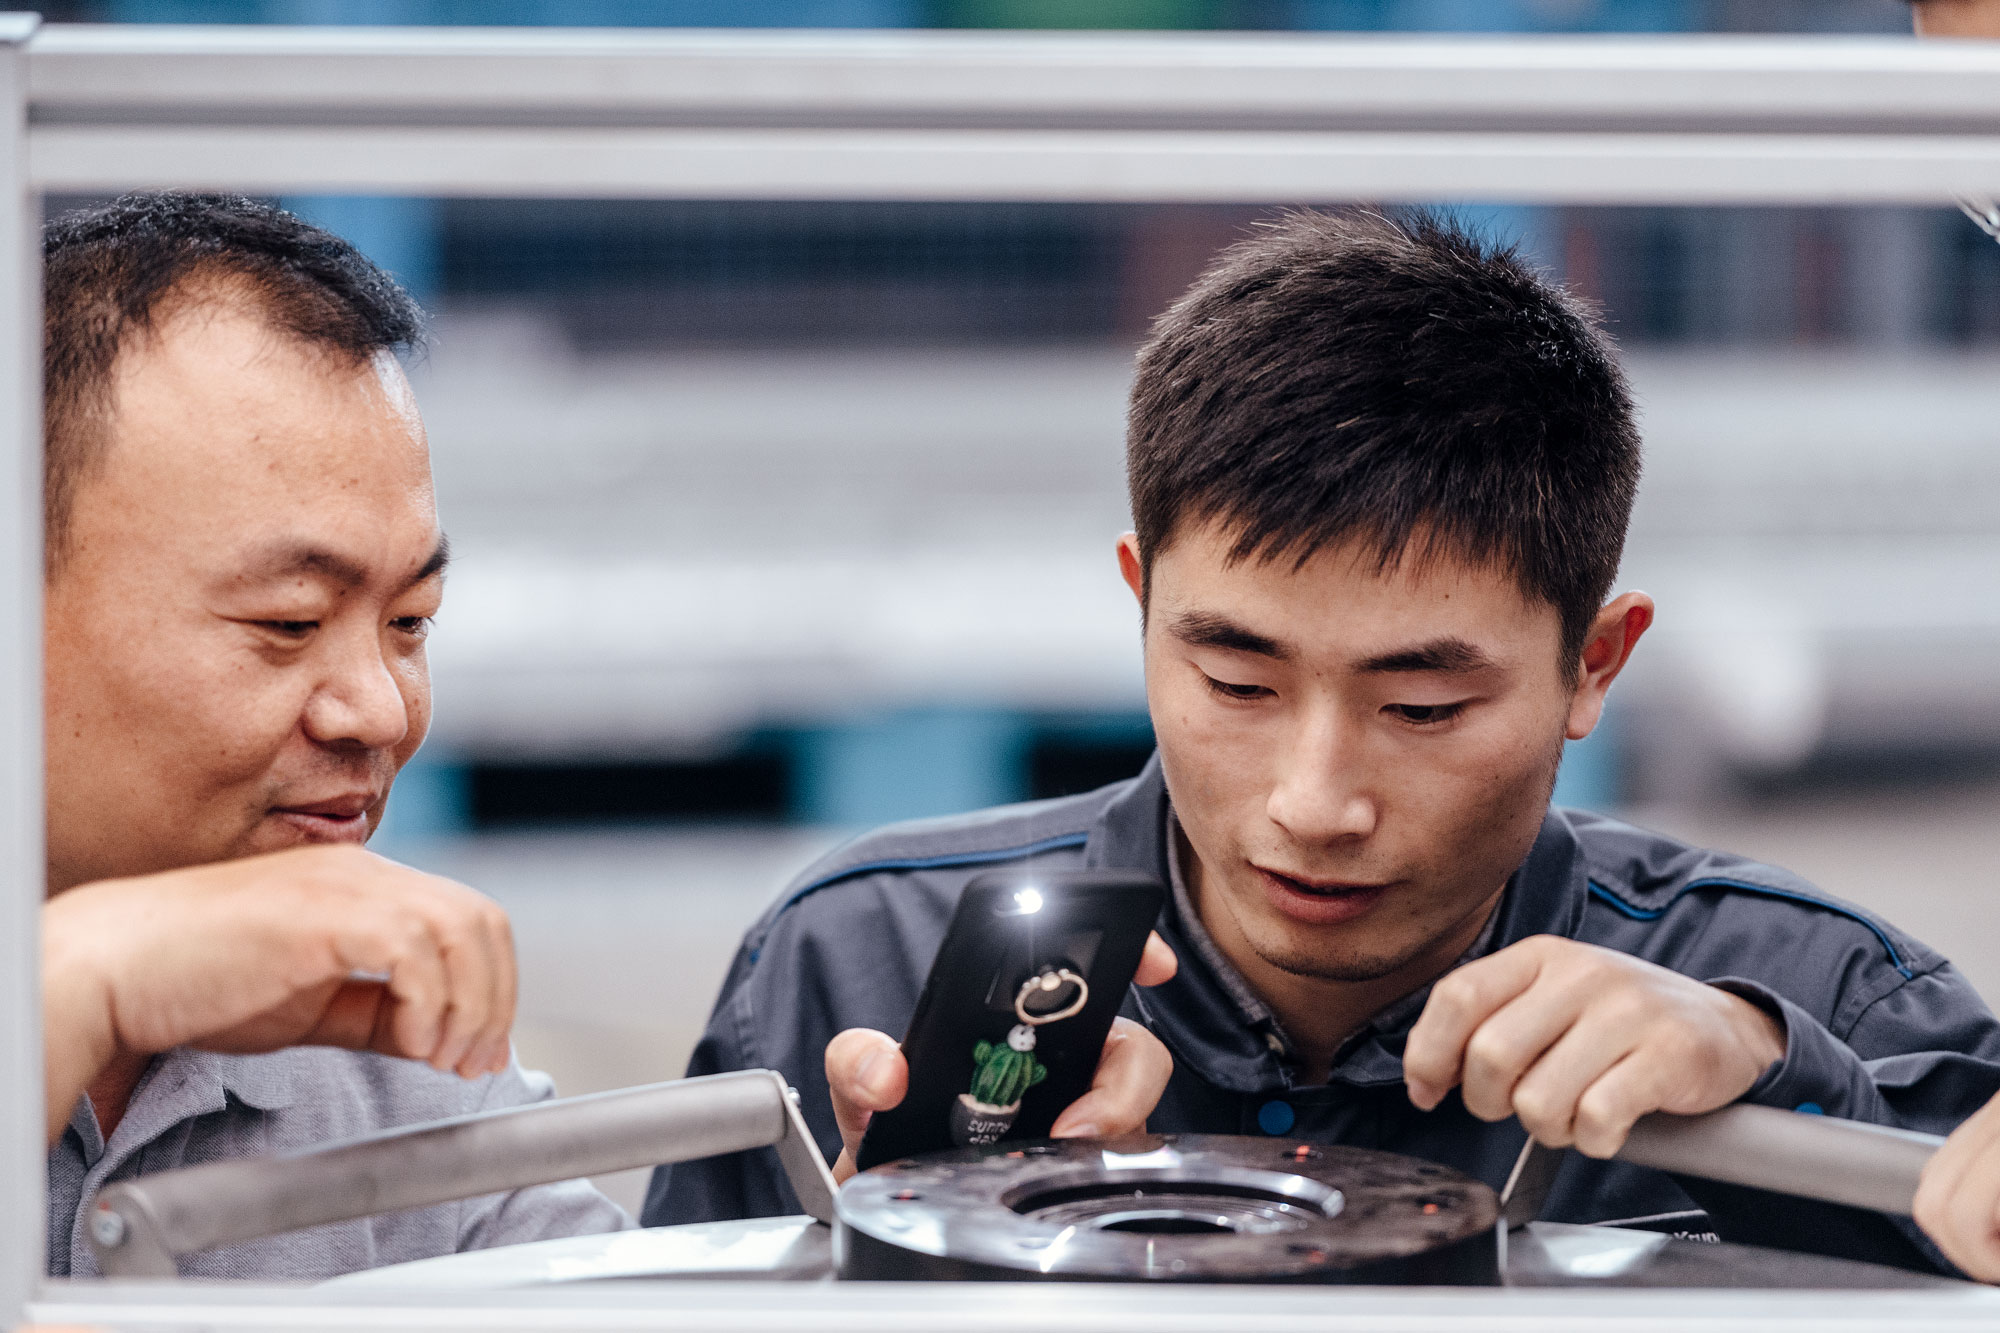 Account Manager Ding Genlin reports on the challenges he faces as an Account Manager in China